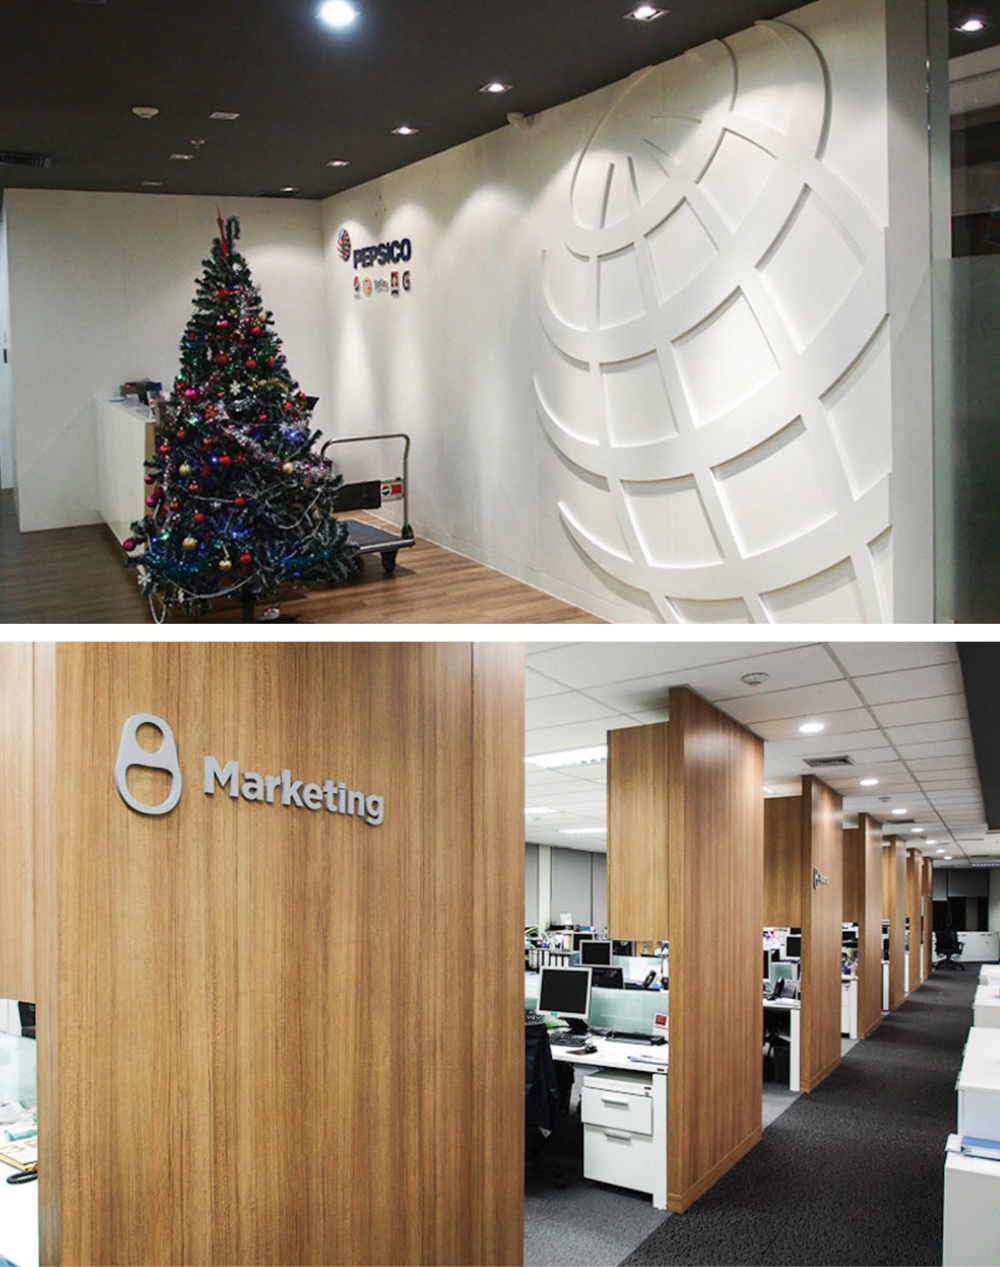 PEPSICO THAILAND  Graphics design on interior for Pepsico Thailand office based on brand's core-visual and product to apply for design icon department sign and brand's environment.